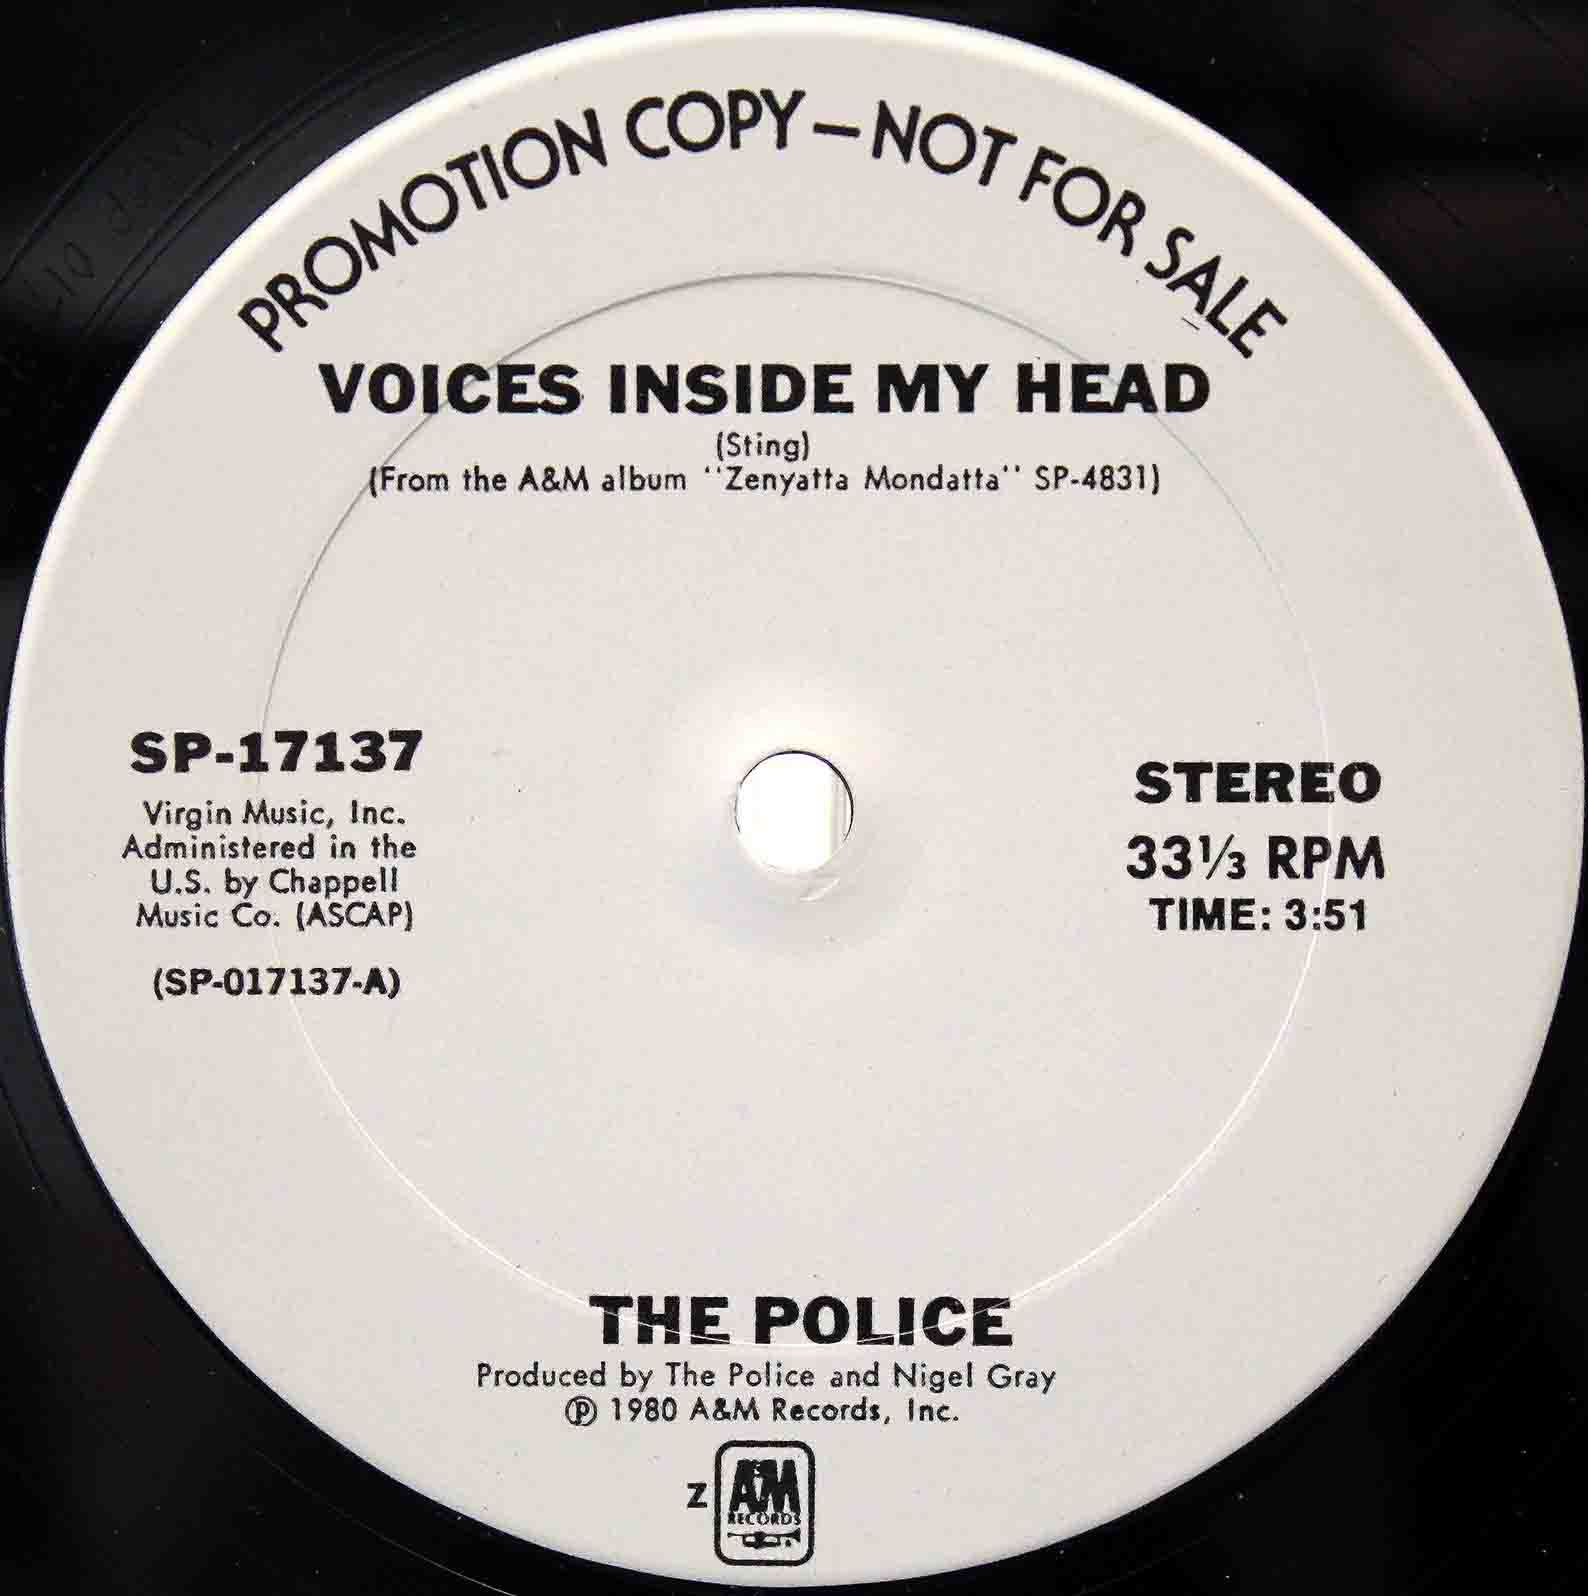 The Police - Voices Inside My Head 02